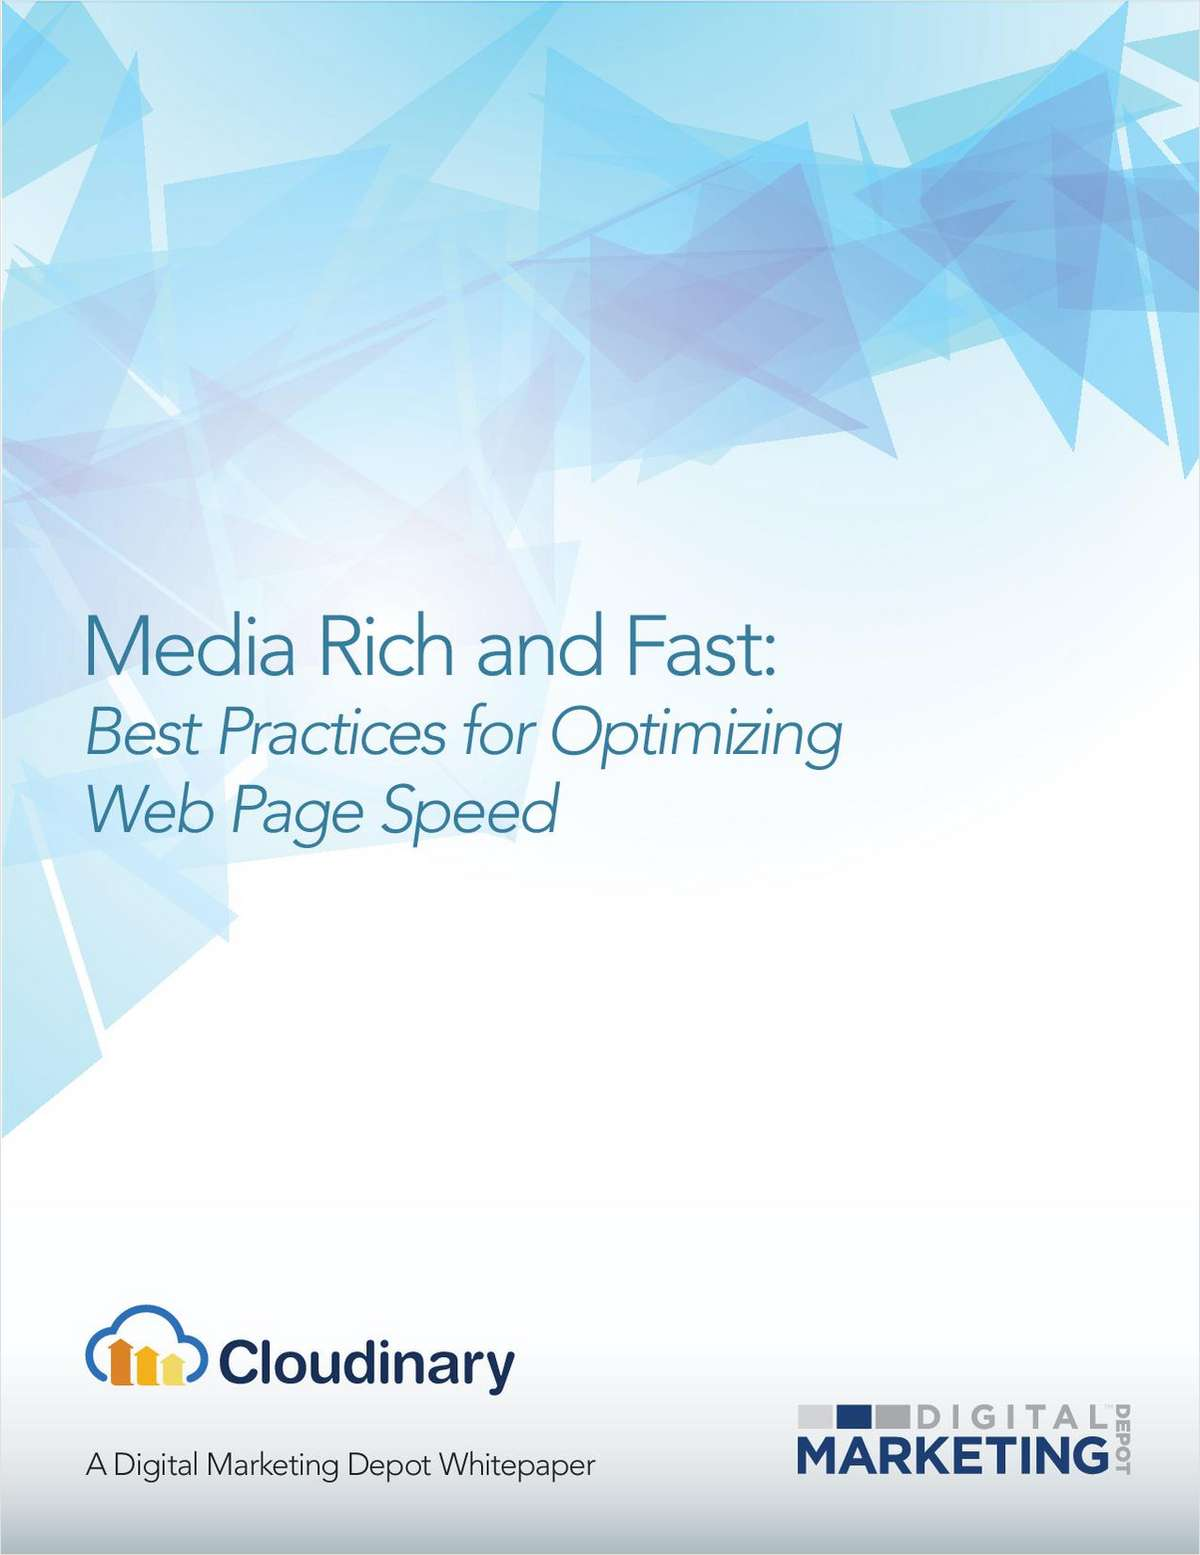 Media Rich and Fast: Best Practices for Optimizing Web Page Speed